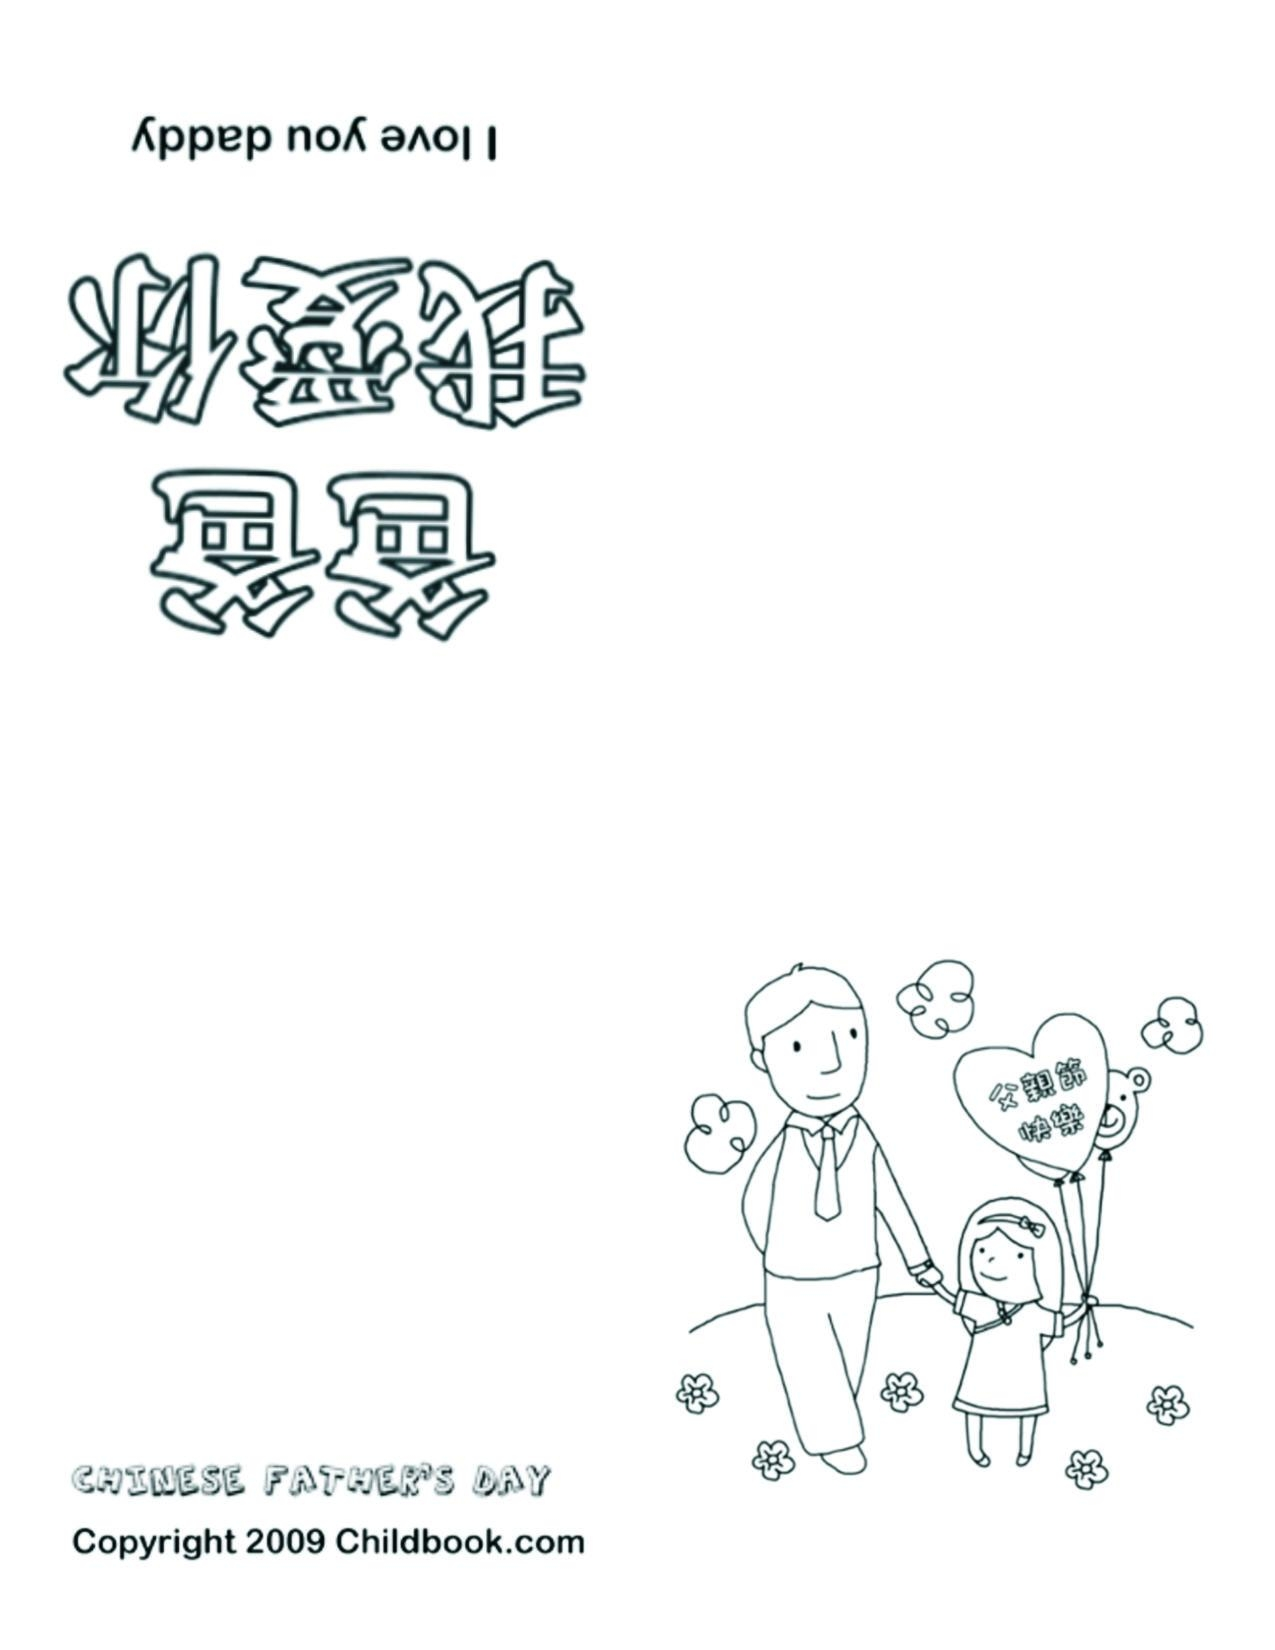 Chinese Fathers Day Coloring Pages For Kids Intended For Wo Ai Ni In Chinese Wall Art (Image 7 of 20)